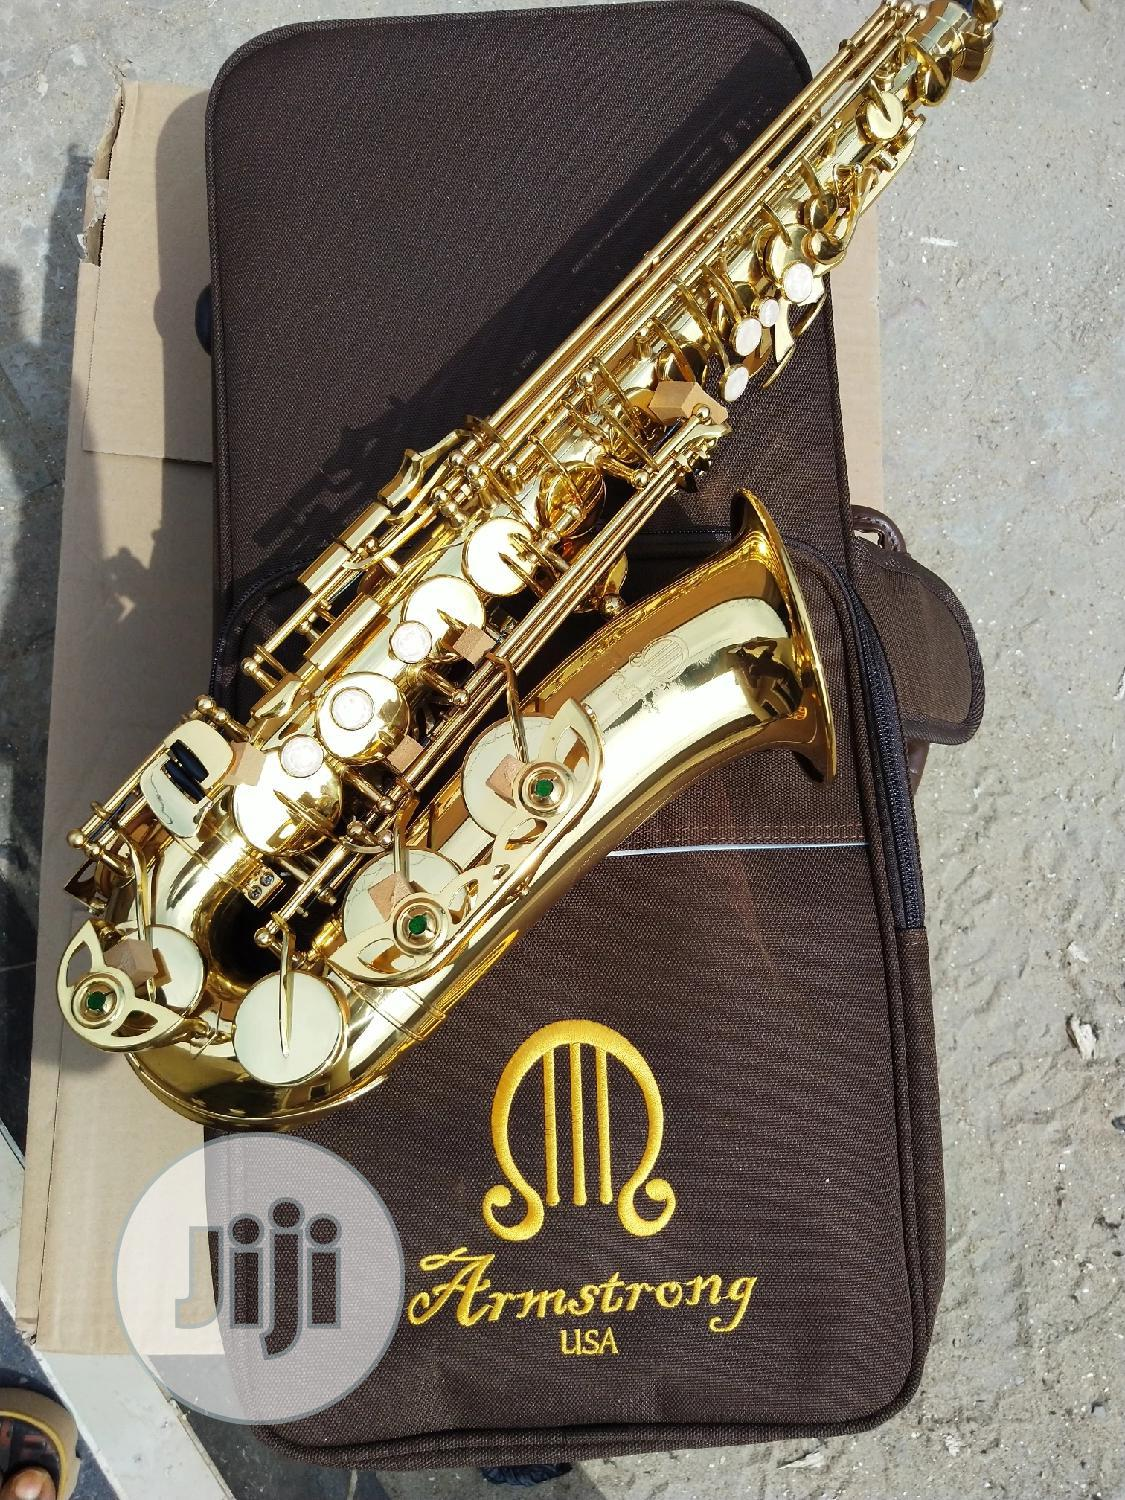 Armstrong Professional Alto Saxophone